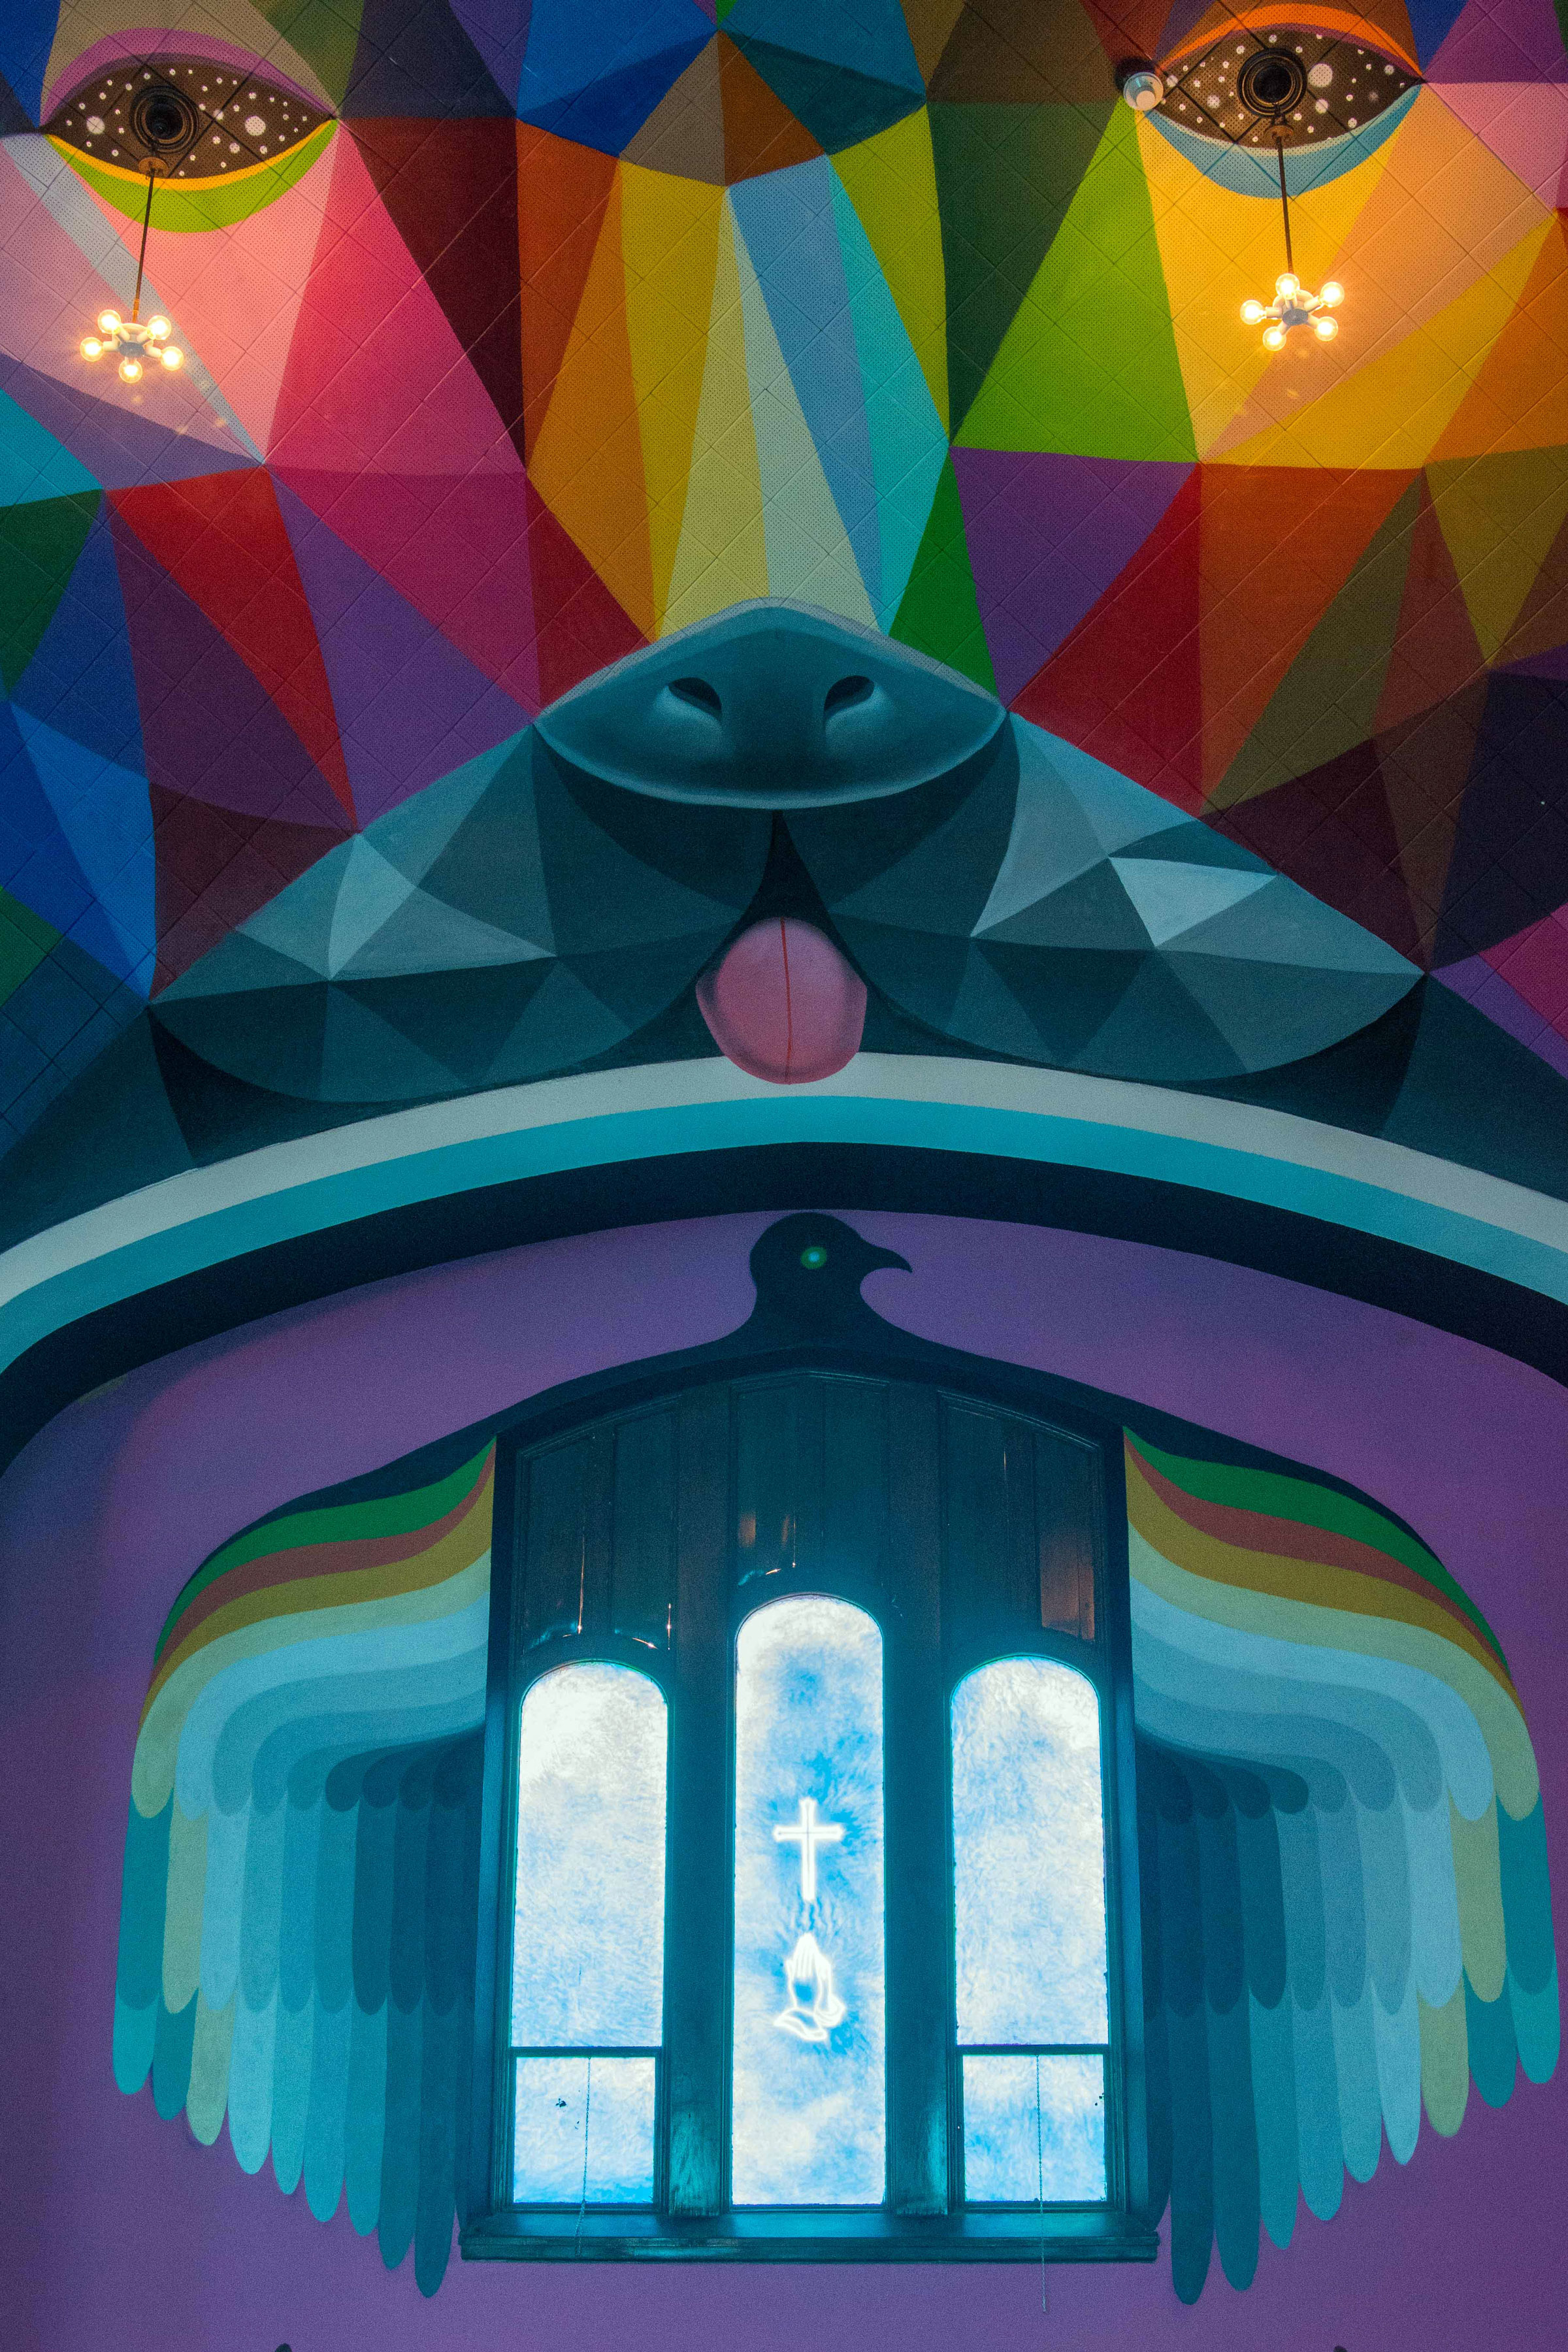 <p>Spanish artist Okuda San Miguel spent one week painting inside the International Church of Cannabis in Denver, which opens on April 20, 2017.</p>